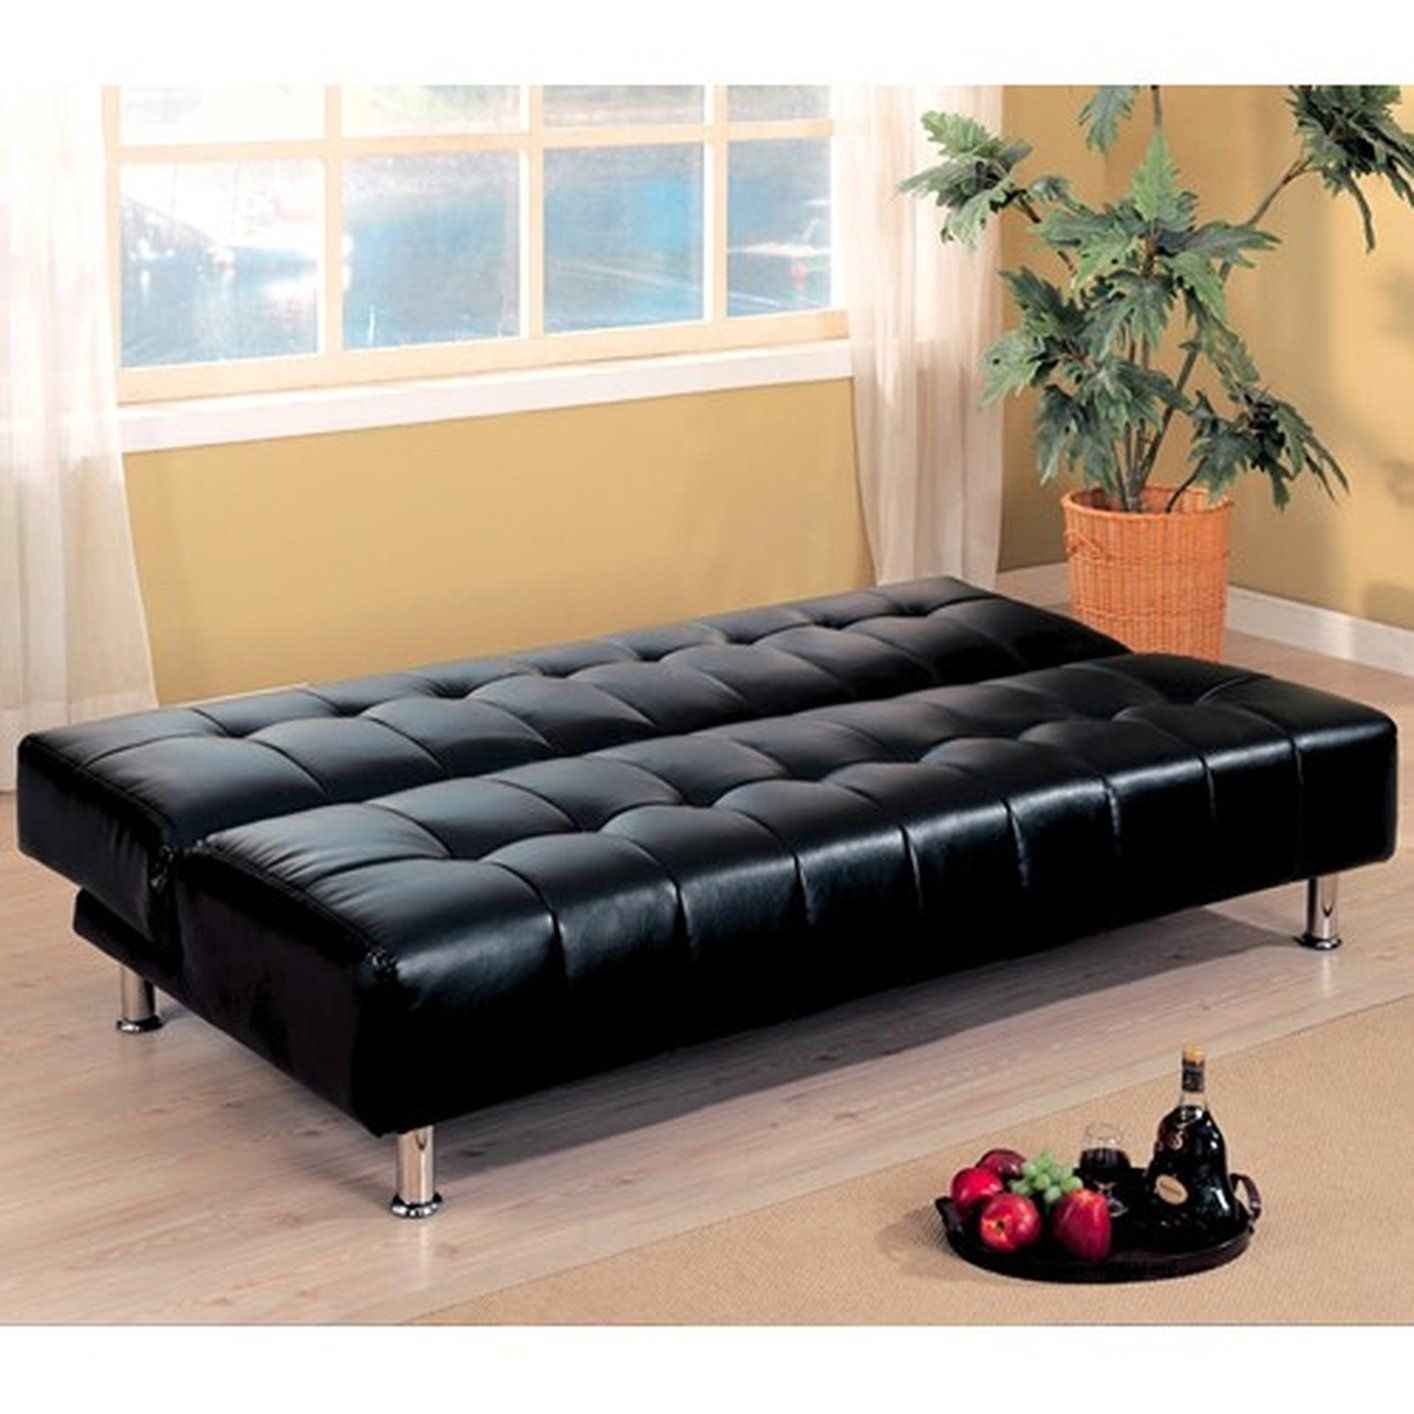 Chesterfield Sofa Best Black leather sofa bed ideas on Pinterest Black leather sofa set Black leather couches and Black couch decor